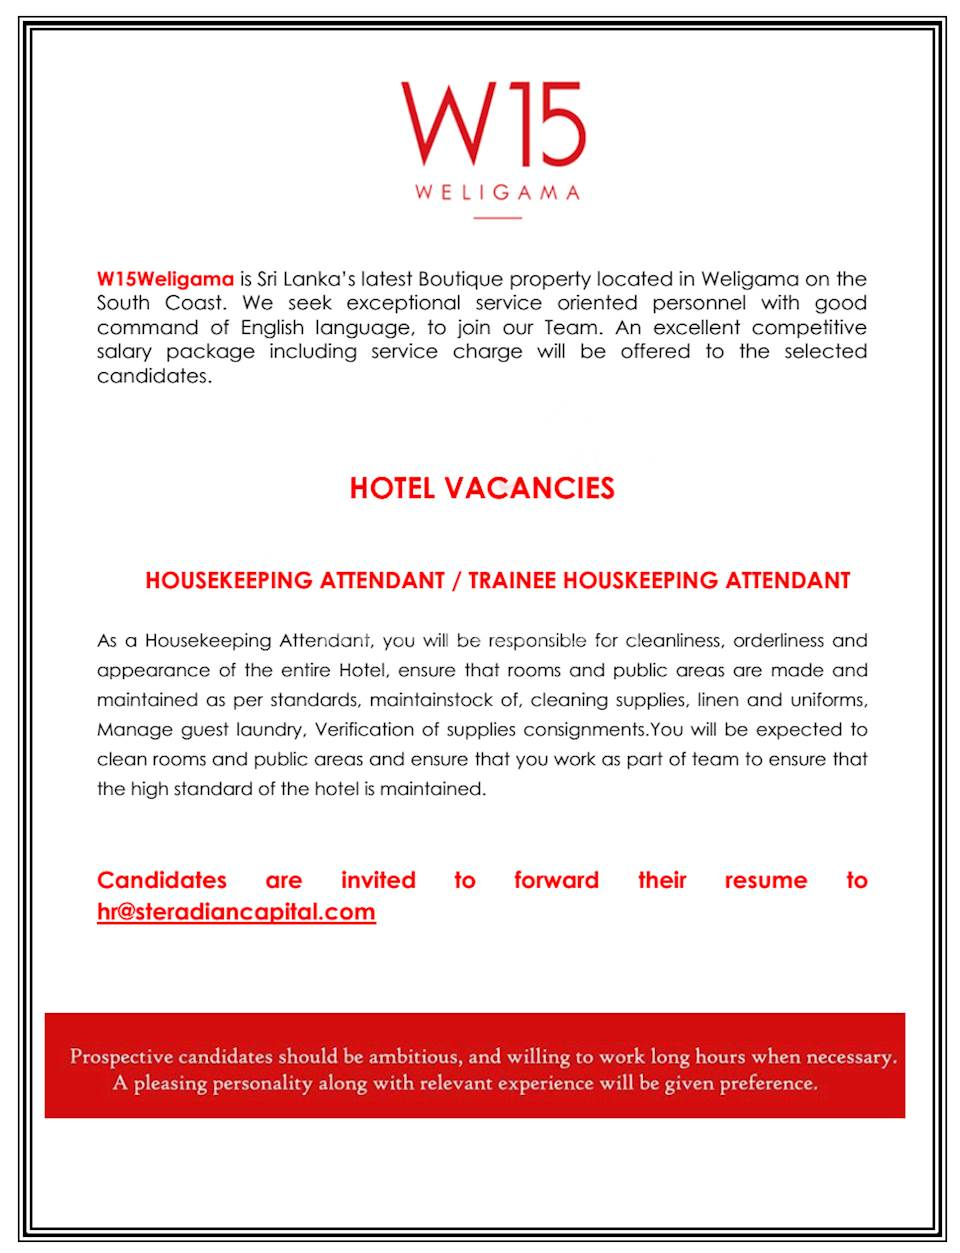 Housekeeping Attendant / Trainee Housekeeping Attendant